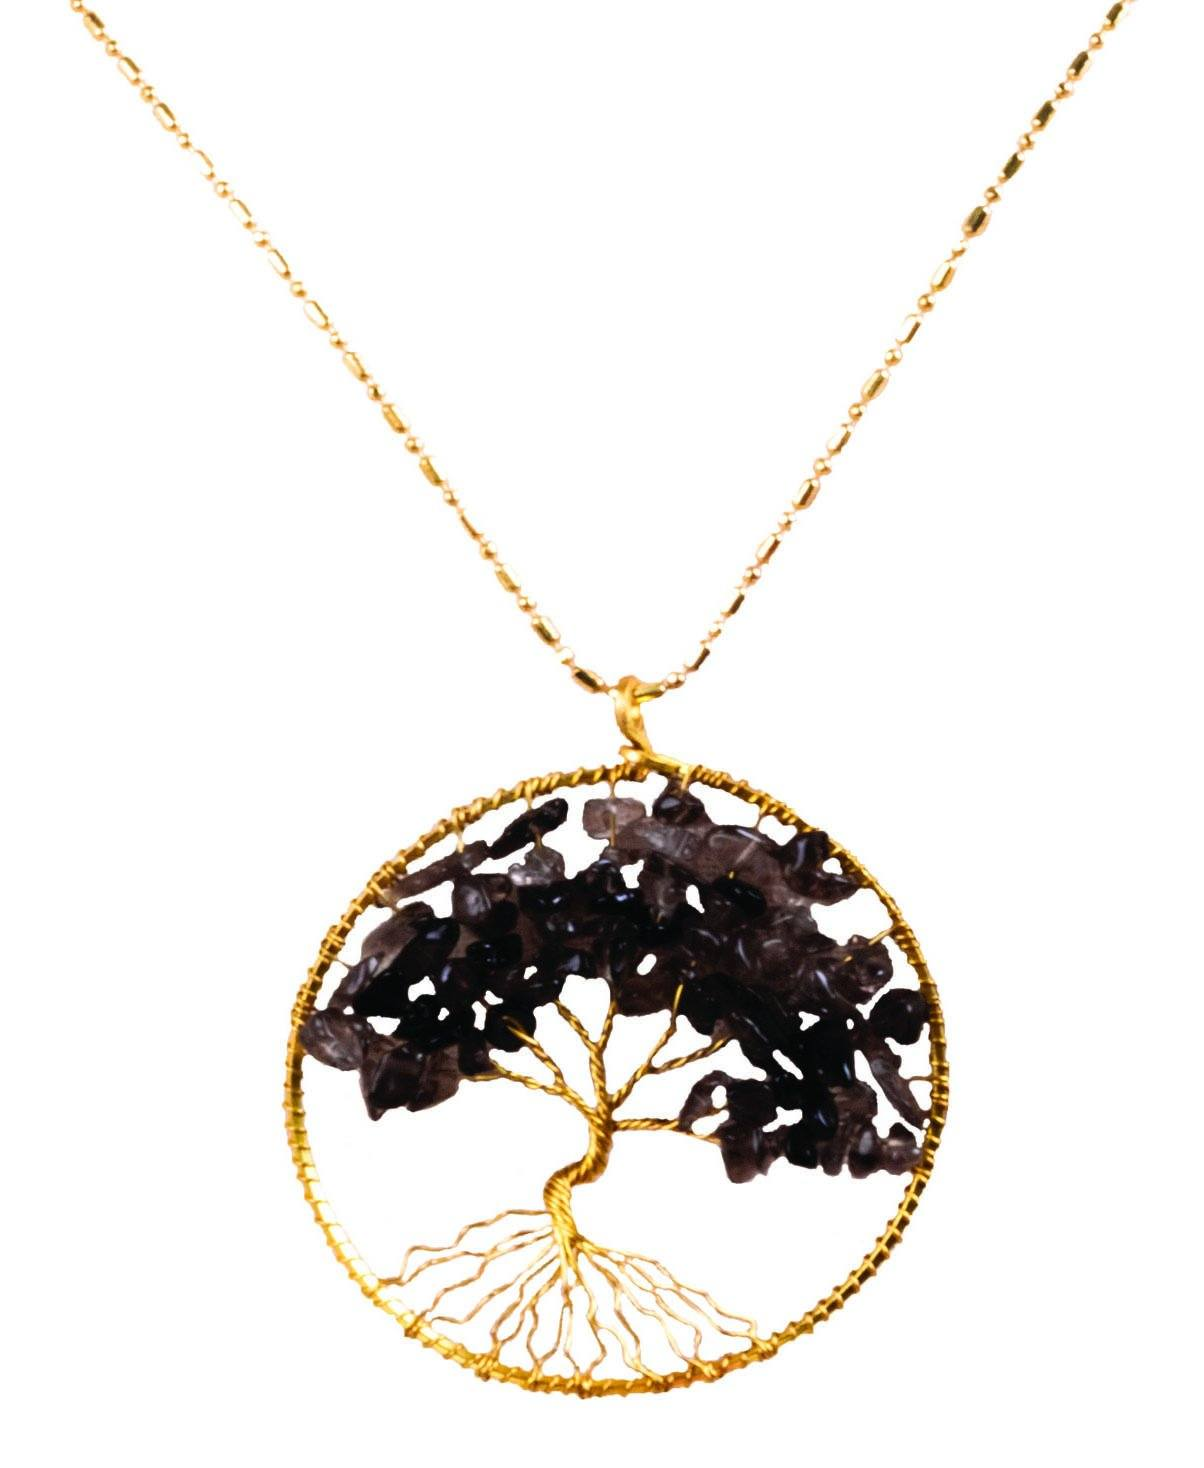 Handmade Necklace Tree of Life Brass with Bead, Crystal and Stone - CCCollections